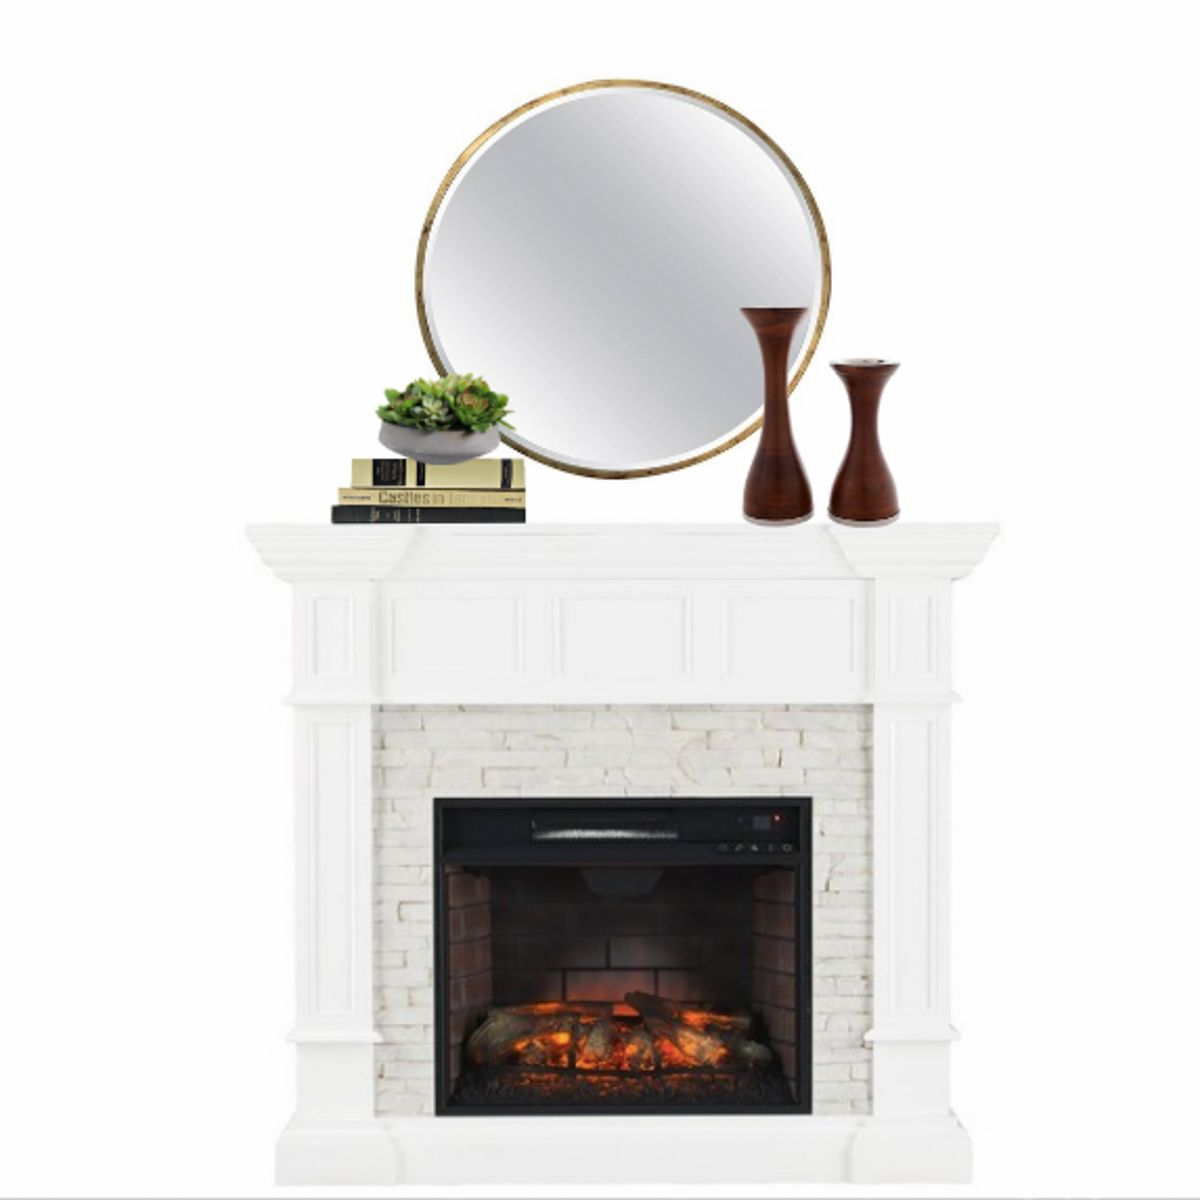 How to perfectly decorate a fireplace mantel in your home